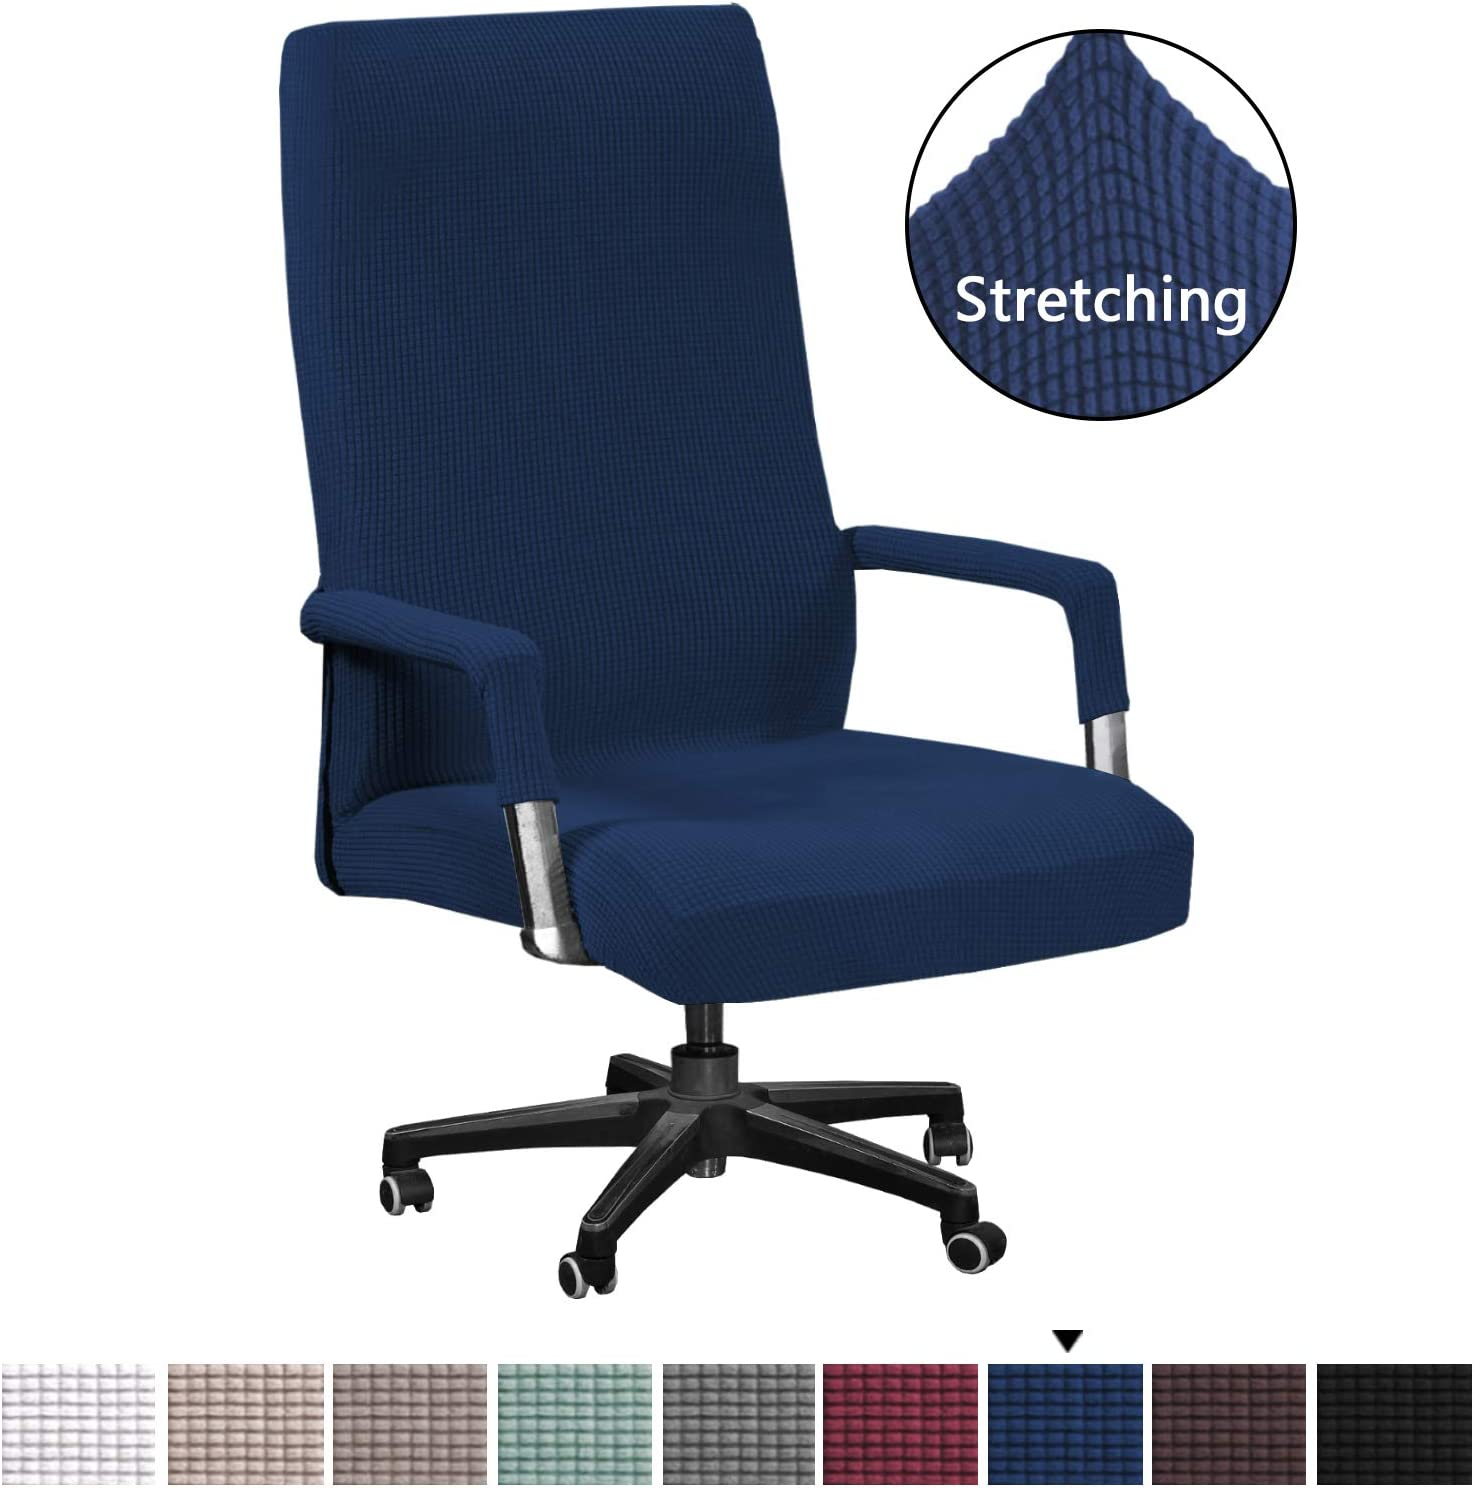 H.VERSAILTEX Computer Office High Back Large Chair Covers Stretchable Jacquard Polyester Washable Rotating Chair Slipcovers with Armrest Covers, Machine Washable/Non Skid Slipcover(Oversized,Navy)